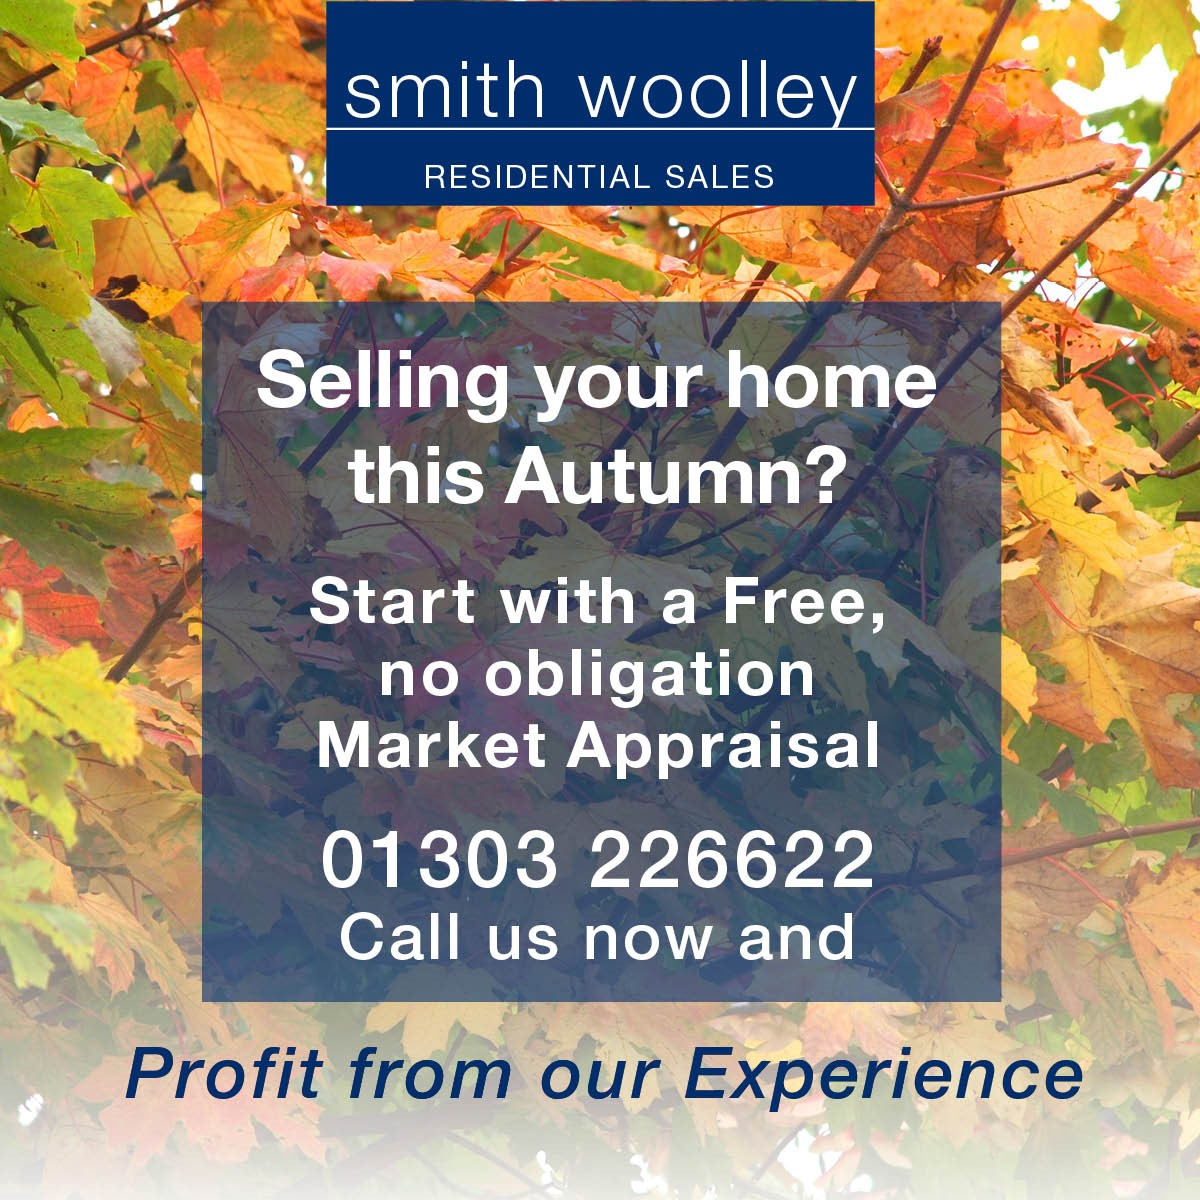 Selling your home this Autumn? Start with a free, no obligation market appraisal